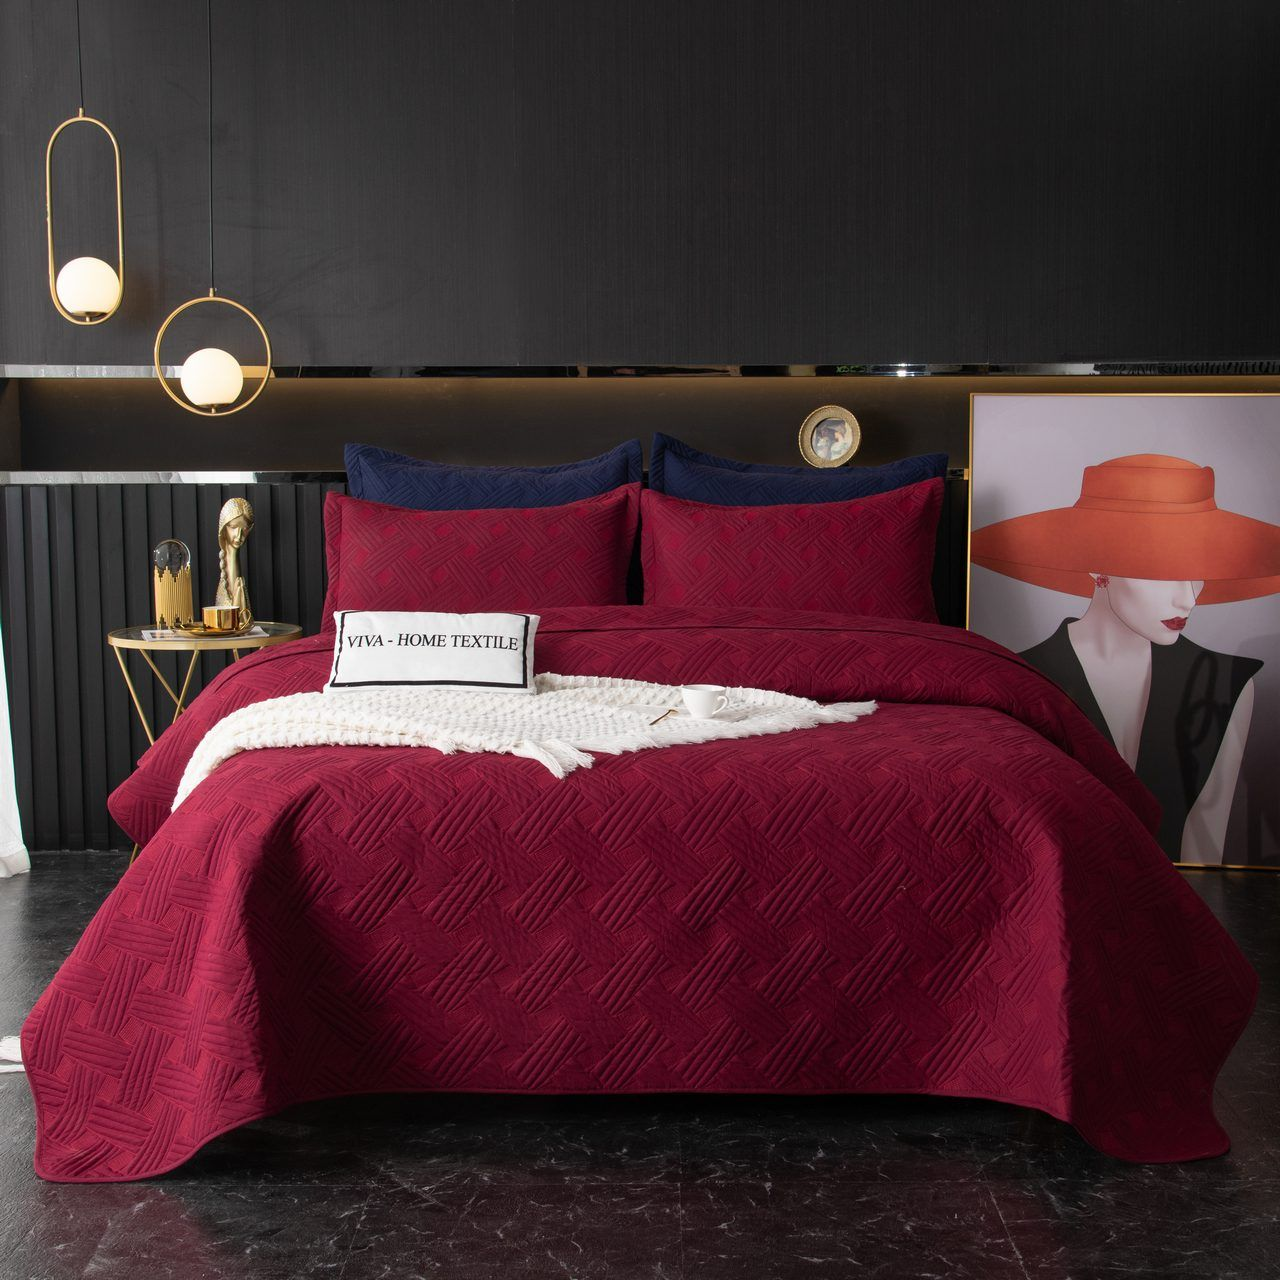 Sitrade / Set single color quilted bedspread and two pillowcases 50-70, OP026